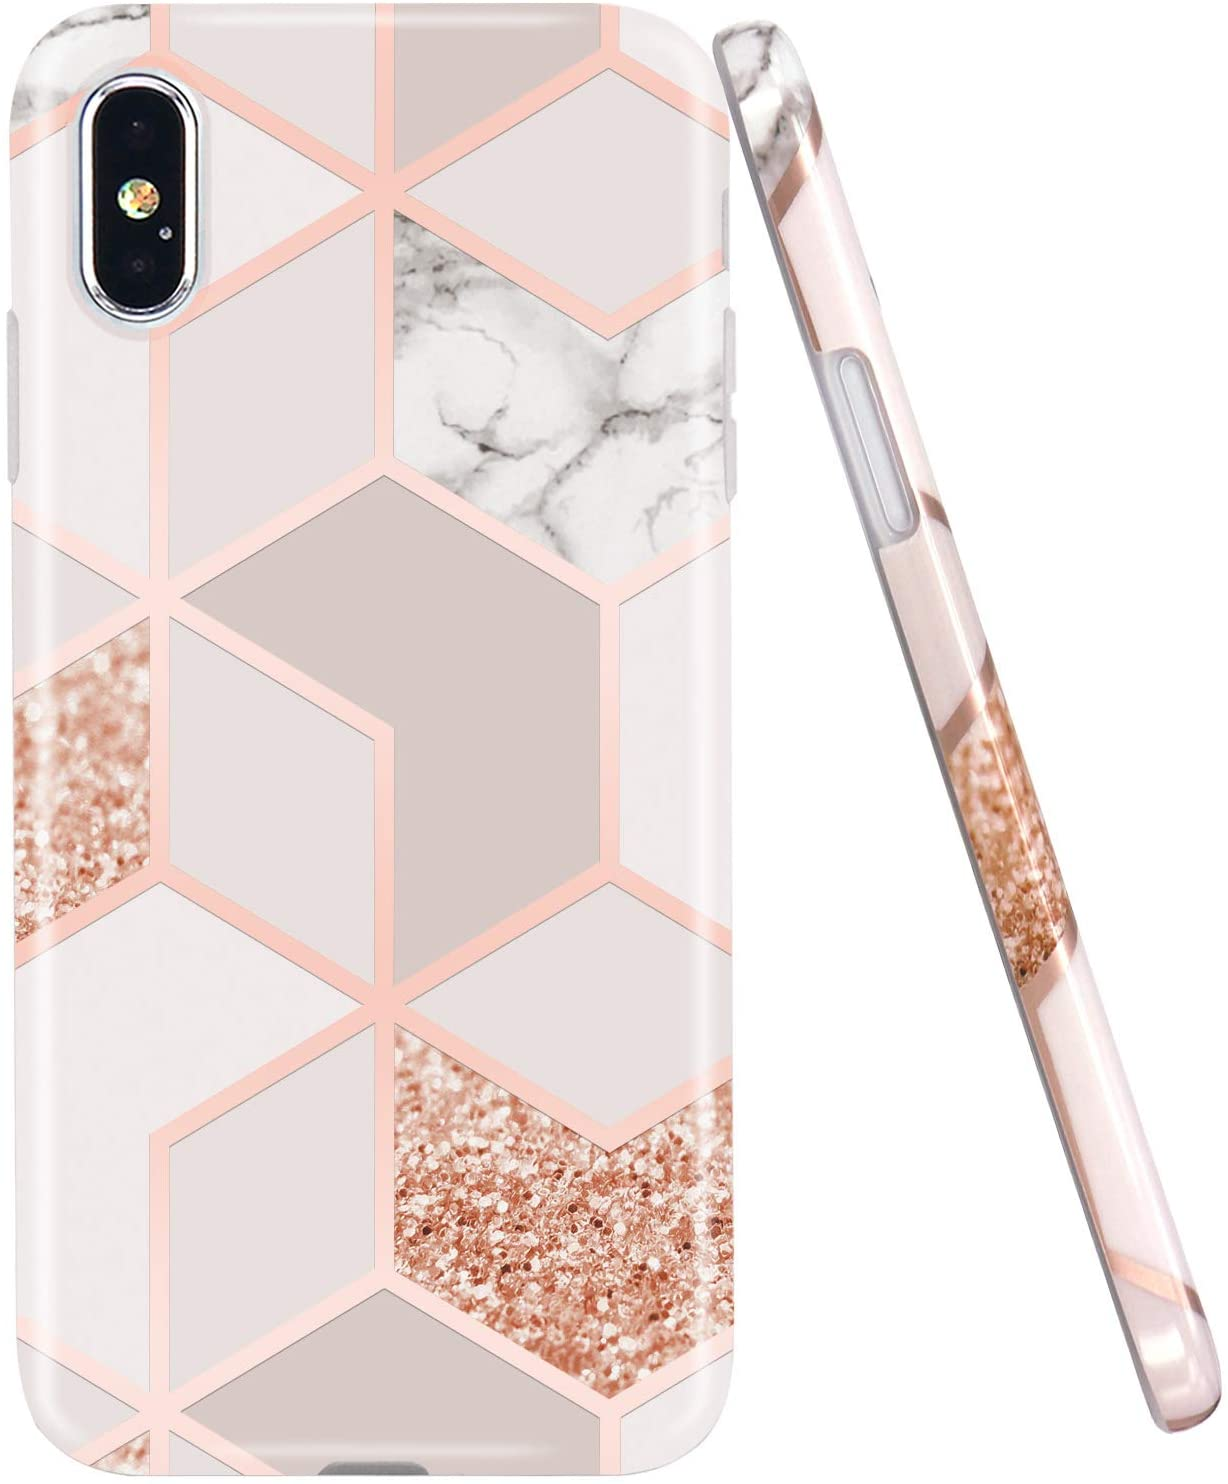 JAHOLAN Compatible iPhone Xs Max Case Bling Glitter Sparkle Rose Gold Marble Design Clear Bumper TPU Soft Rubber Silicone Cover Phone Case for iPhone Xs Max 2018 6.5 inch